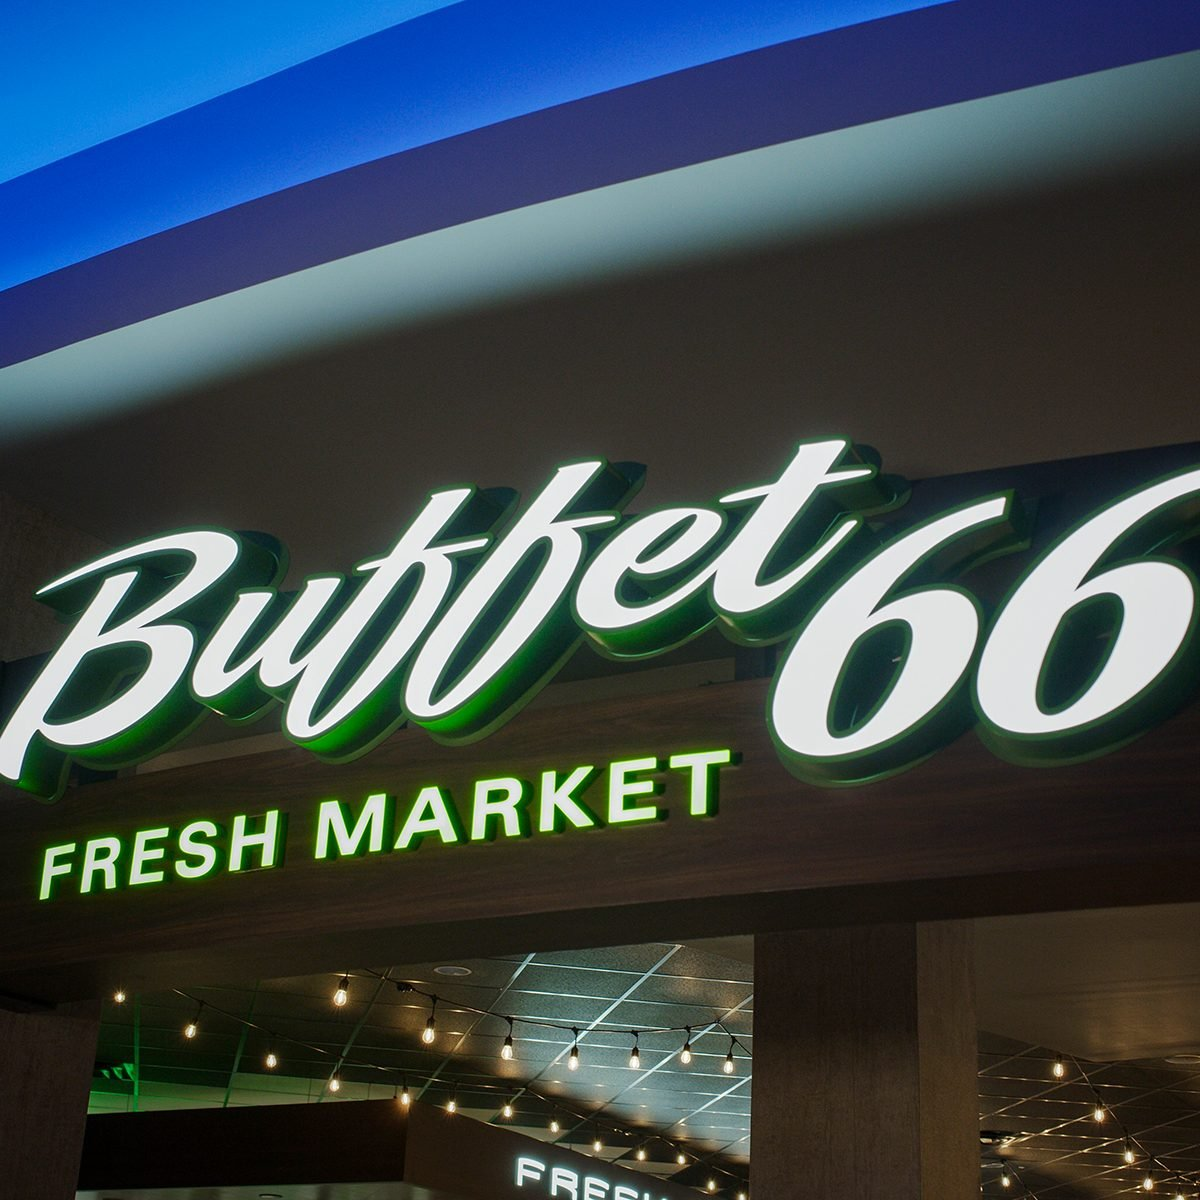 New Mexico: Buffet 66 Fresh Market, Rio Puerco